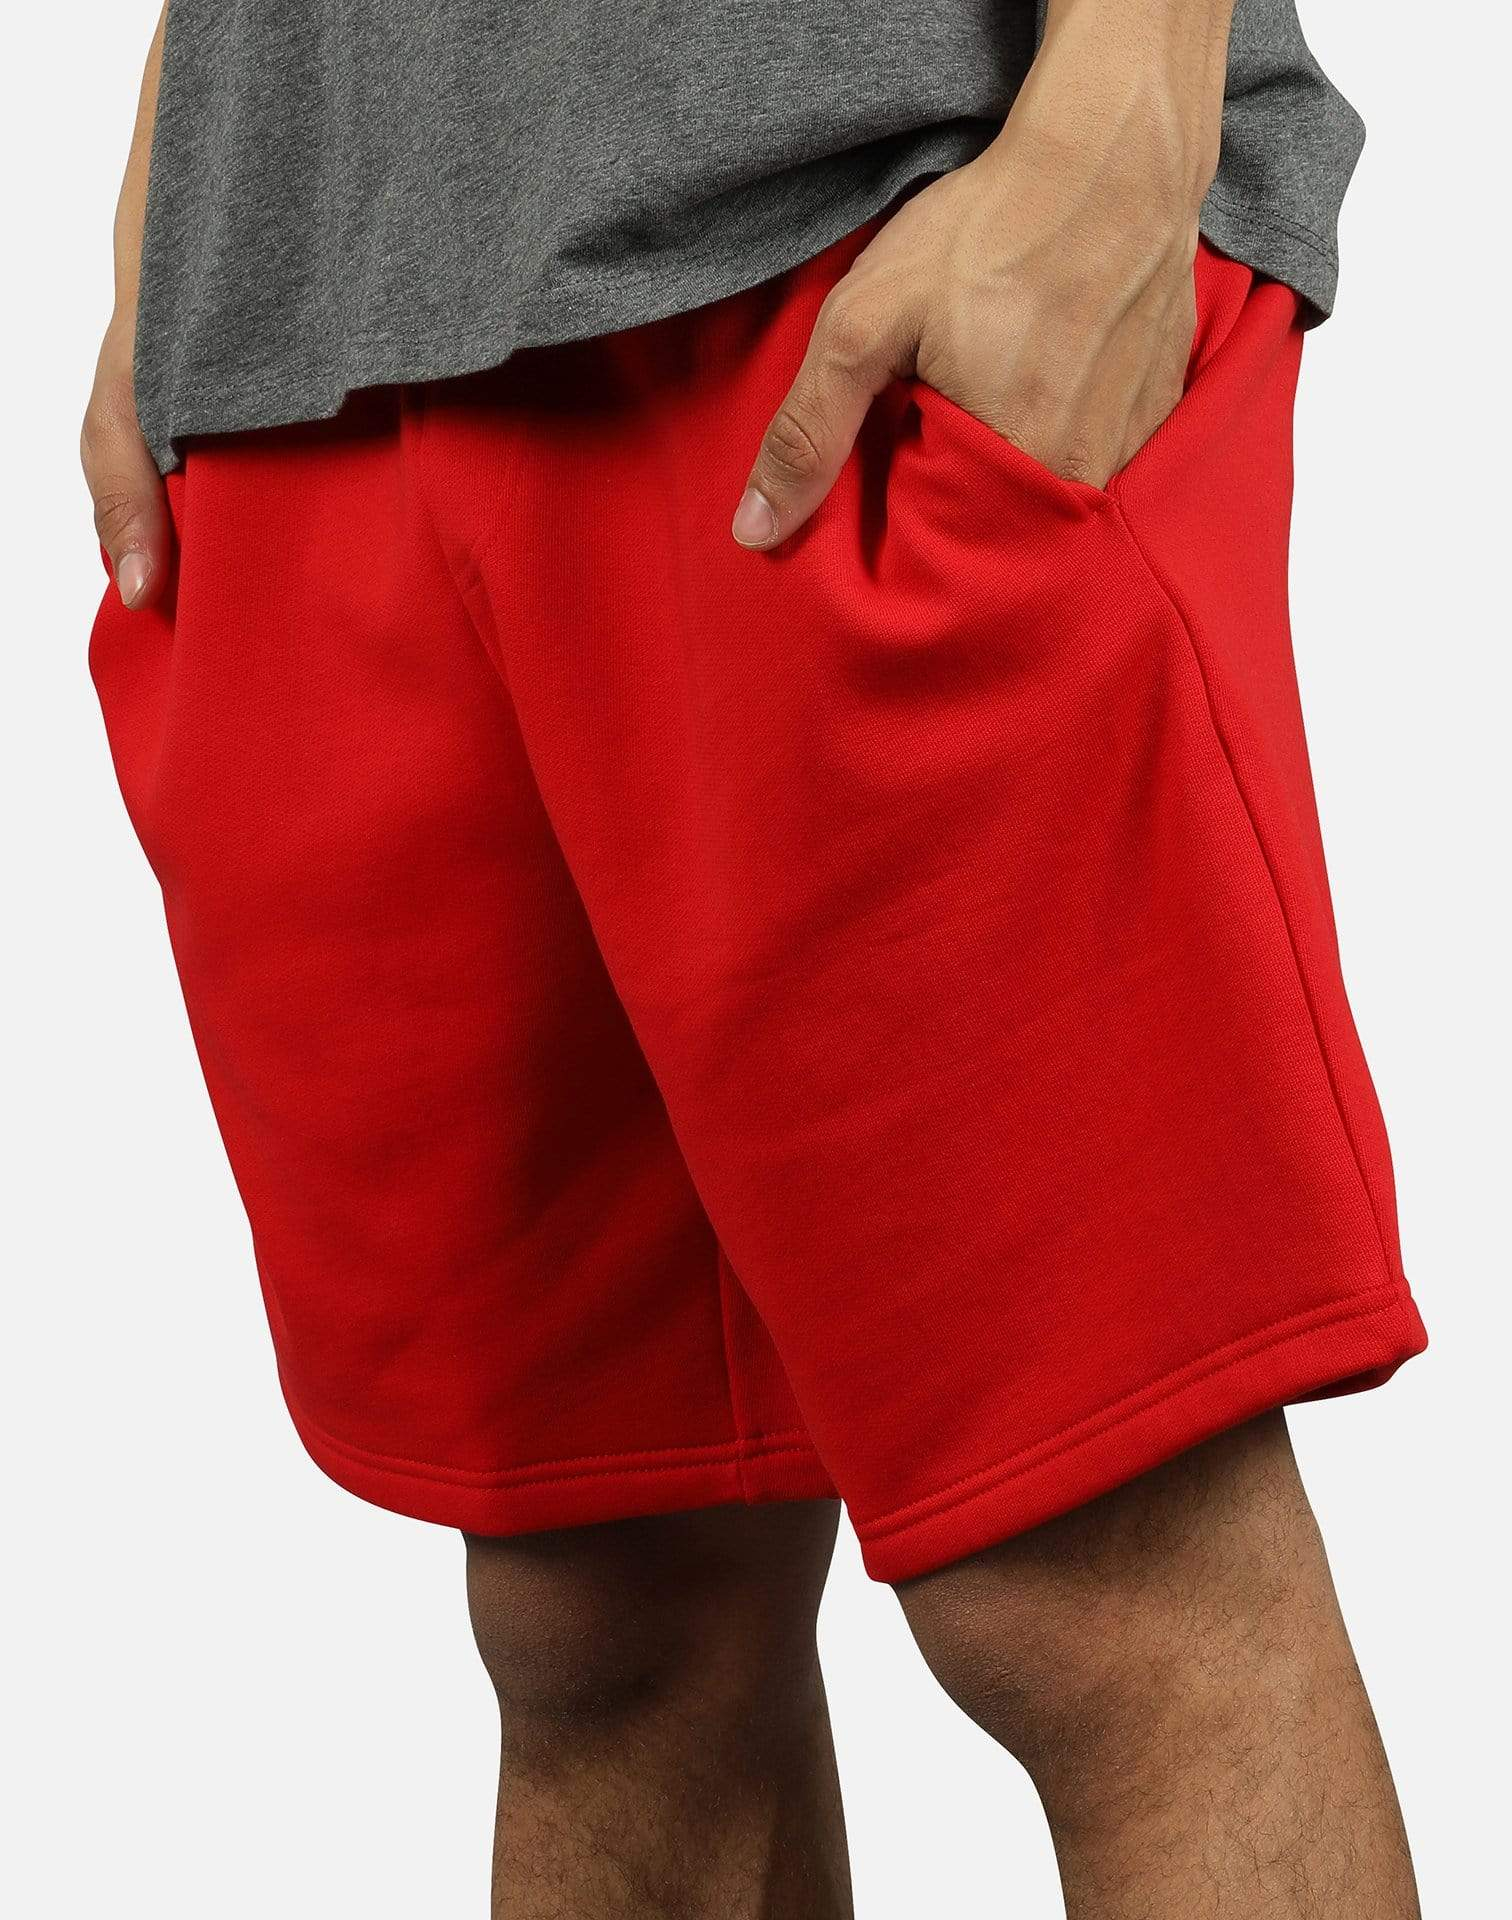 Lacoste Men's Sport Tennis Fleece Shorts